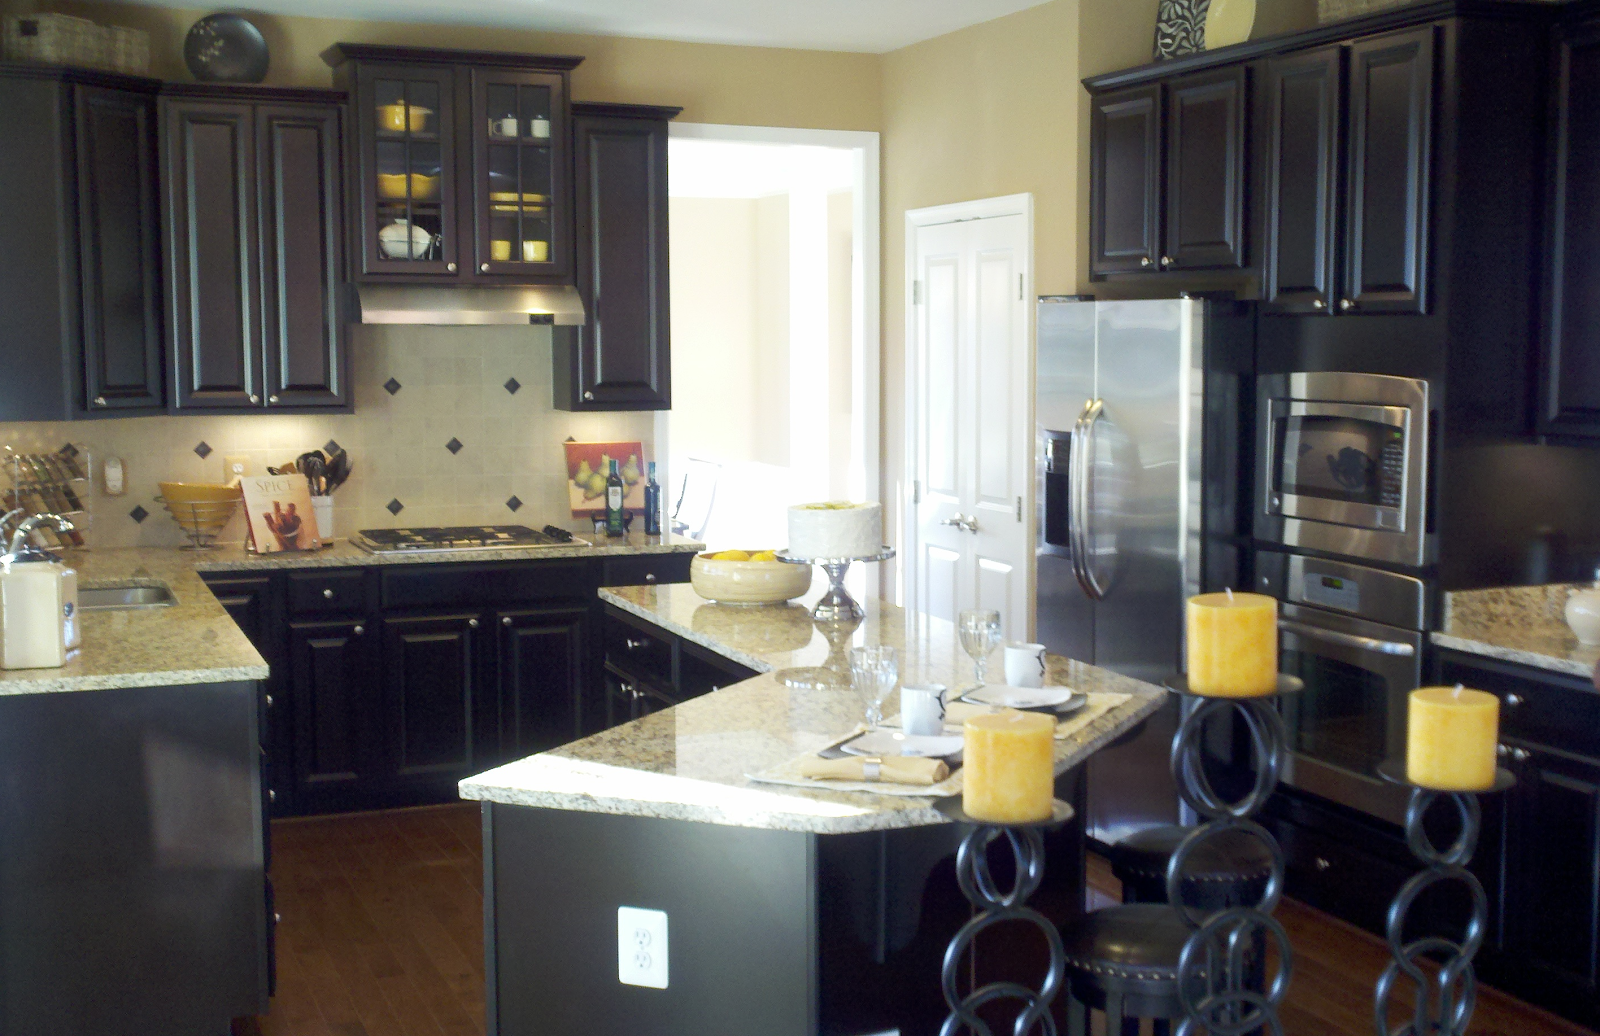 Welcome To The Beginning Of Our Journey Kitchen Cabinets Decor Home Kitchens Espresso Kitchen Cabinets